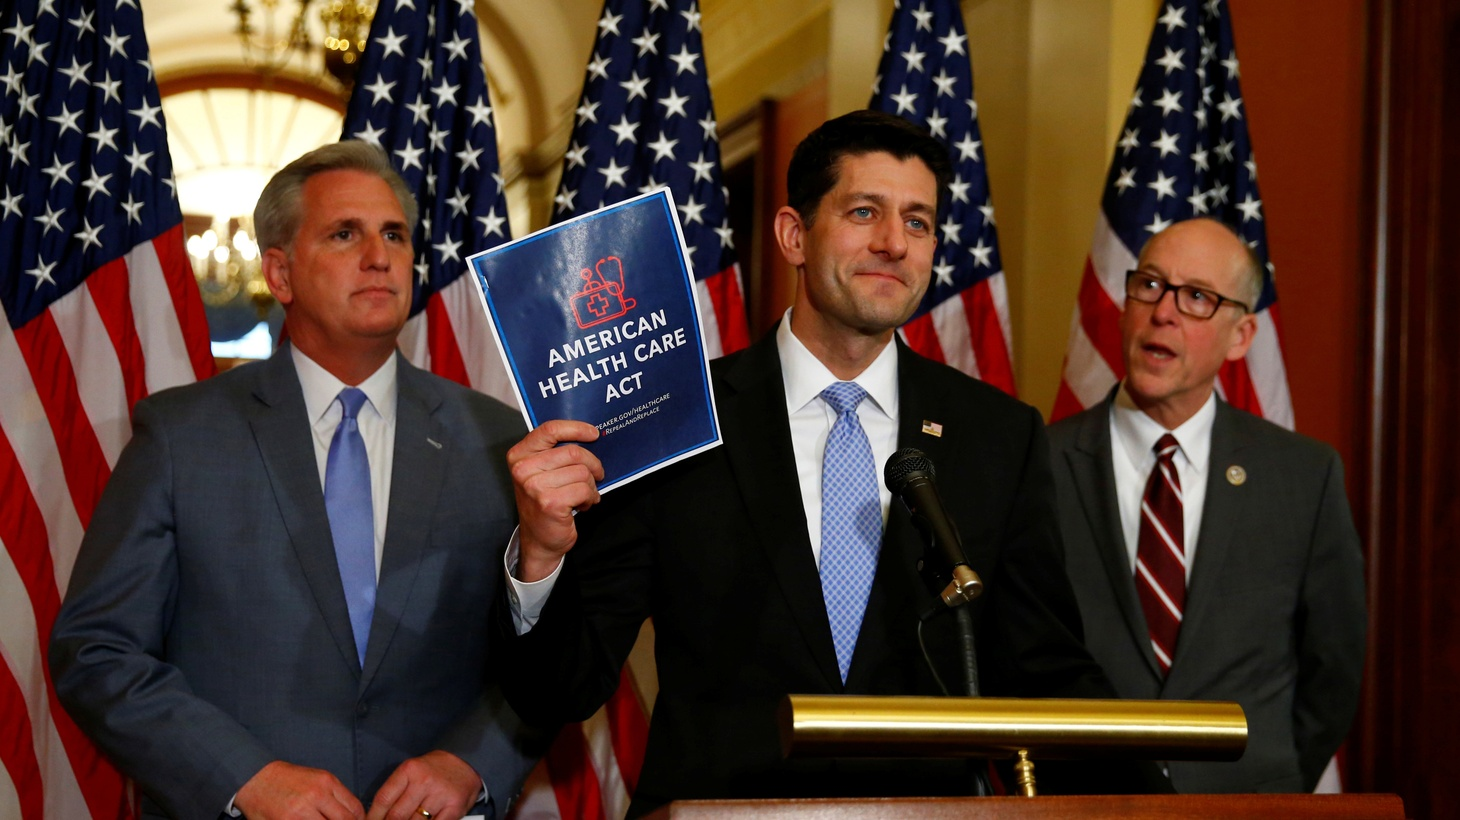 """Republicans are divided and Democrats are saying, """"we told you so,"""" when it comes to official estimates of what it will cost to repeal and replace Obamacare. The Trump White House says the Congressional Budget Office is just wrong."""